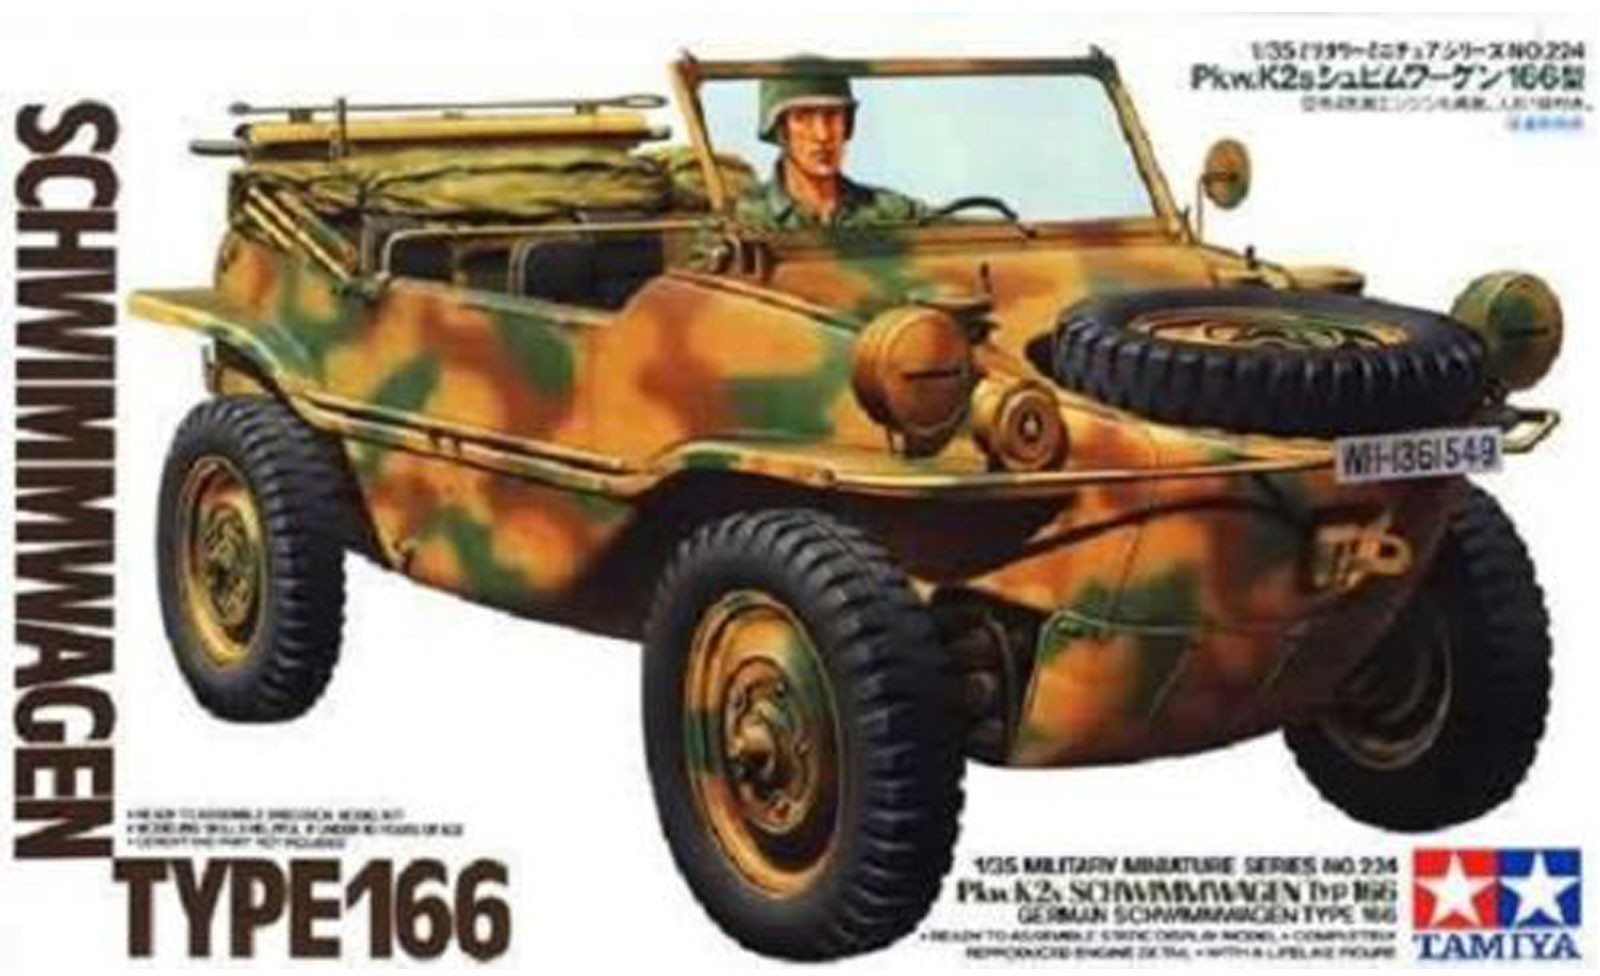 German Schwimmwagen Type 166 - Tamiya 35224 - plastic model kit - 1/35 scale